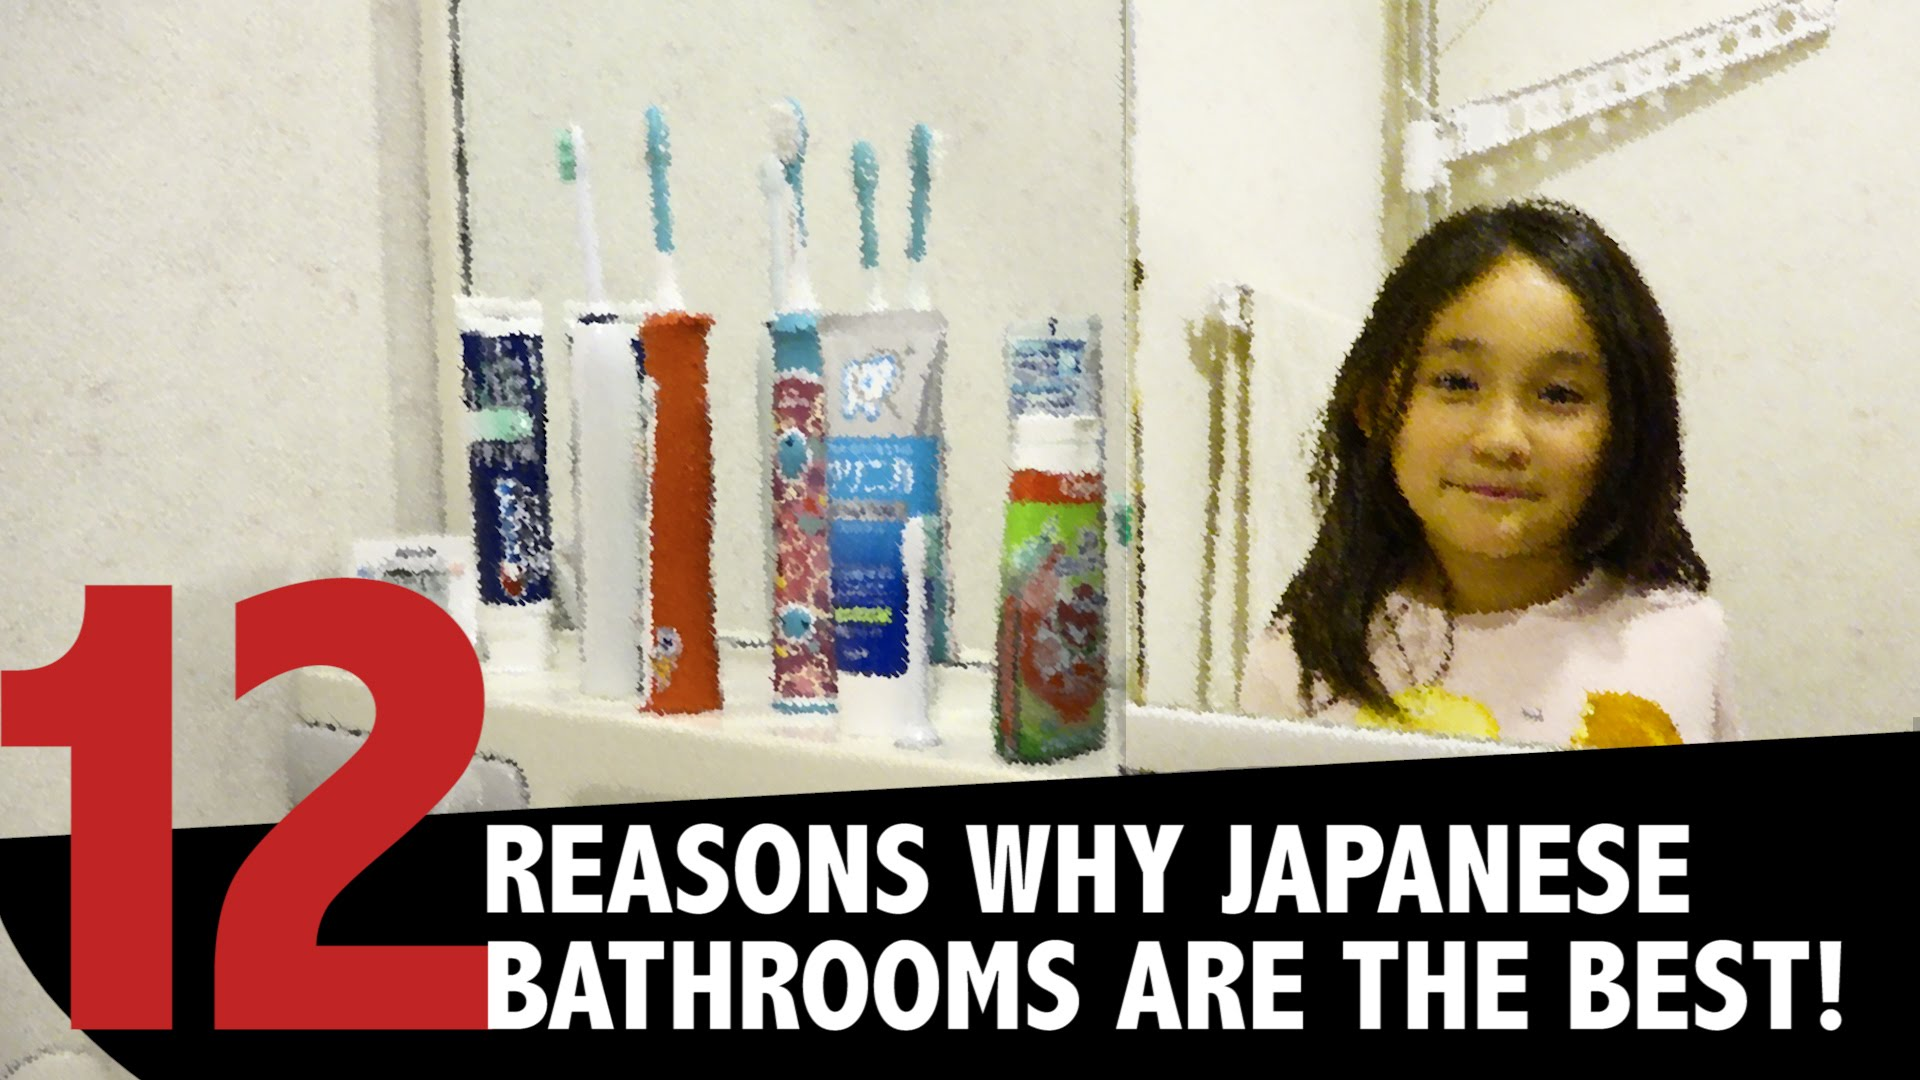 12 Reasons Why Japanese Bathrooms are the Best